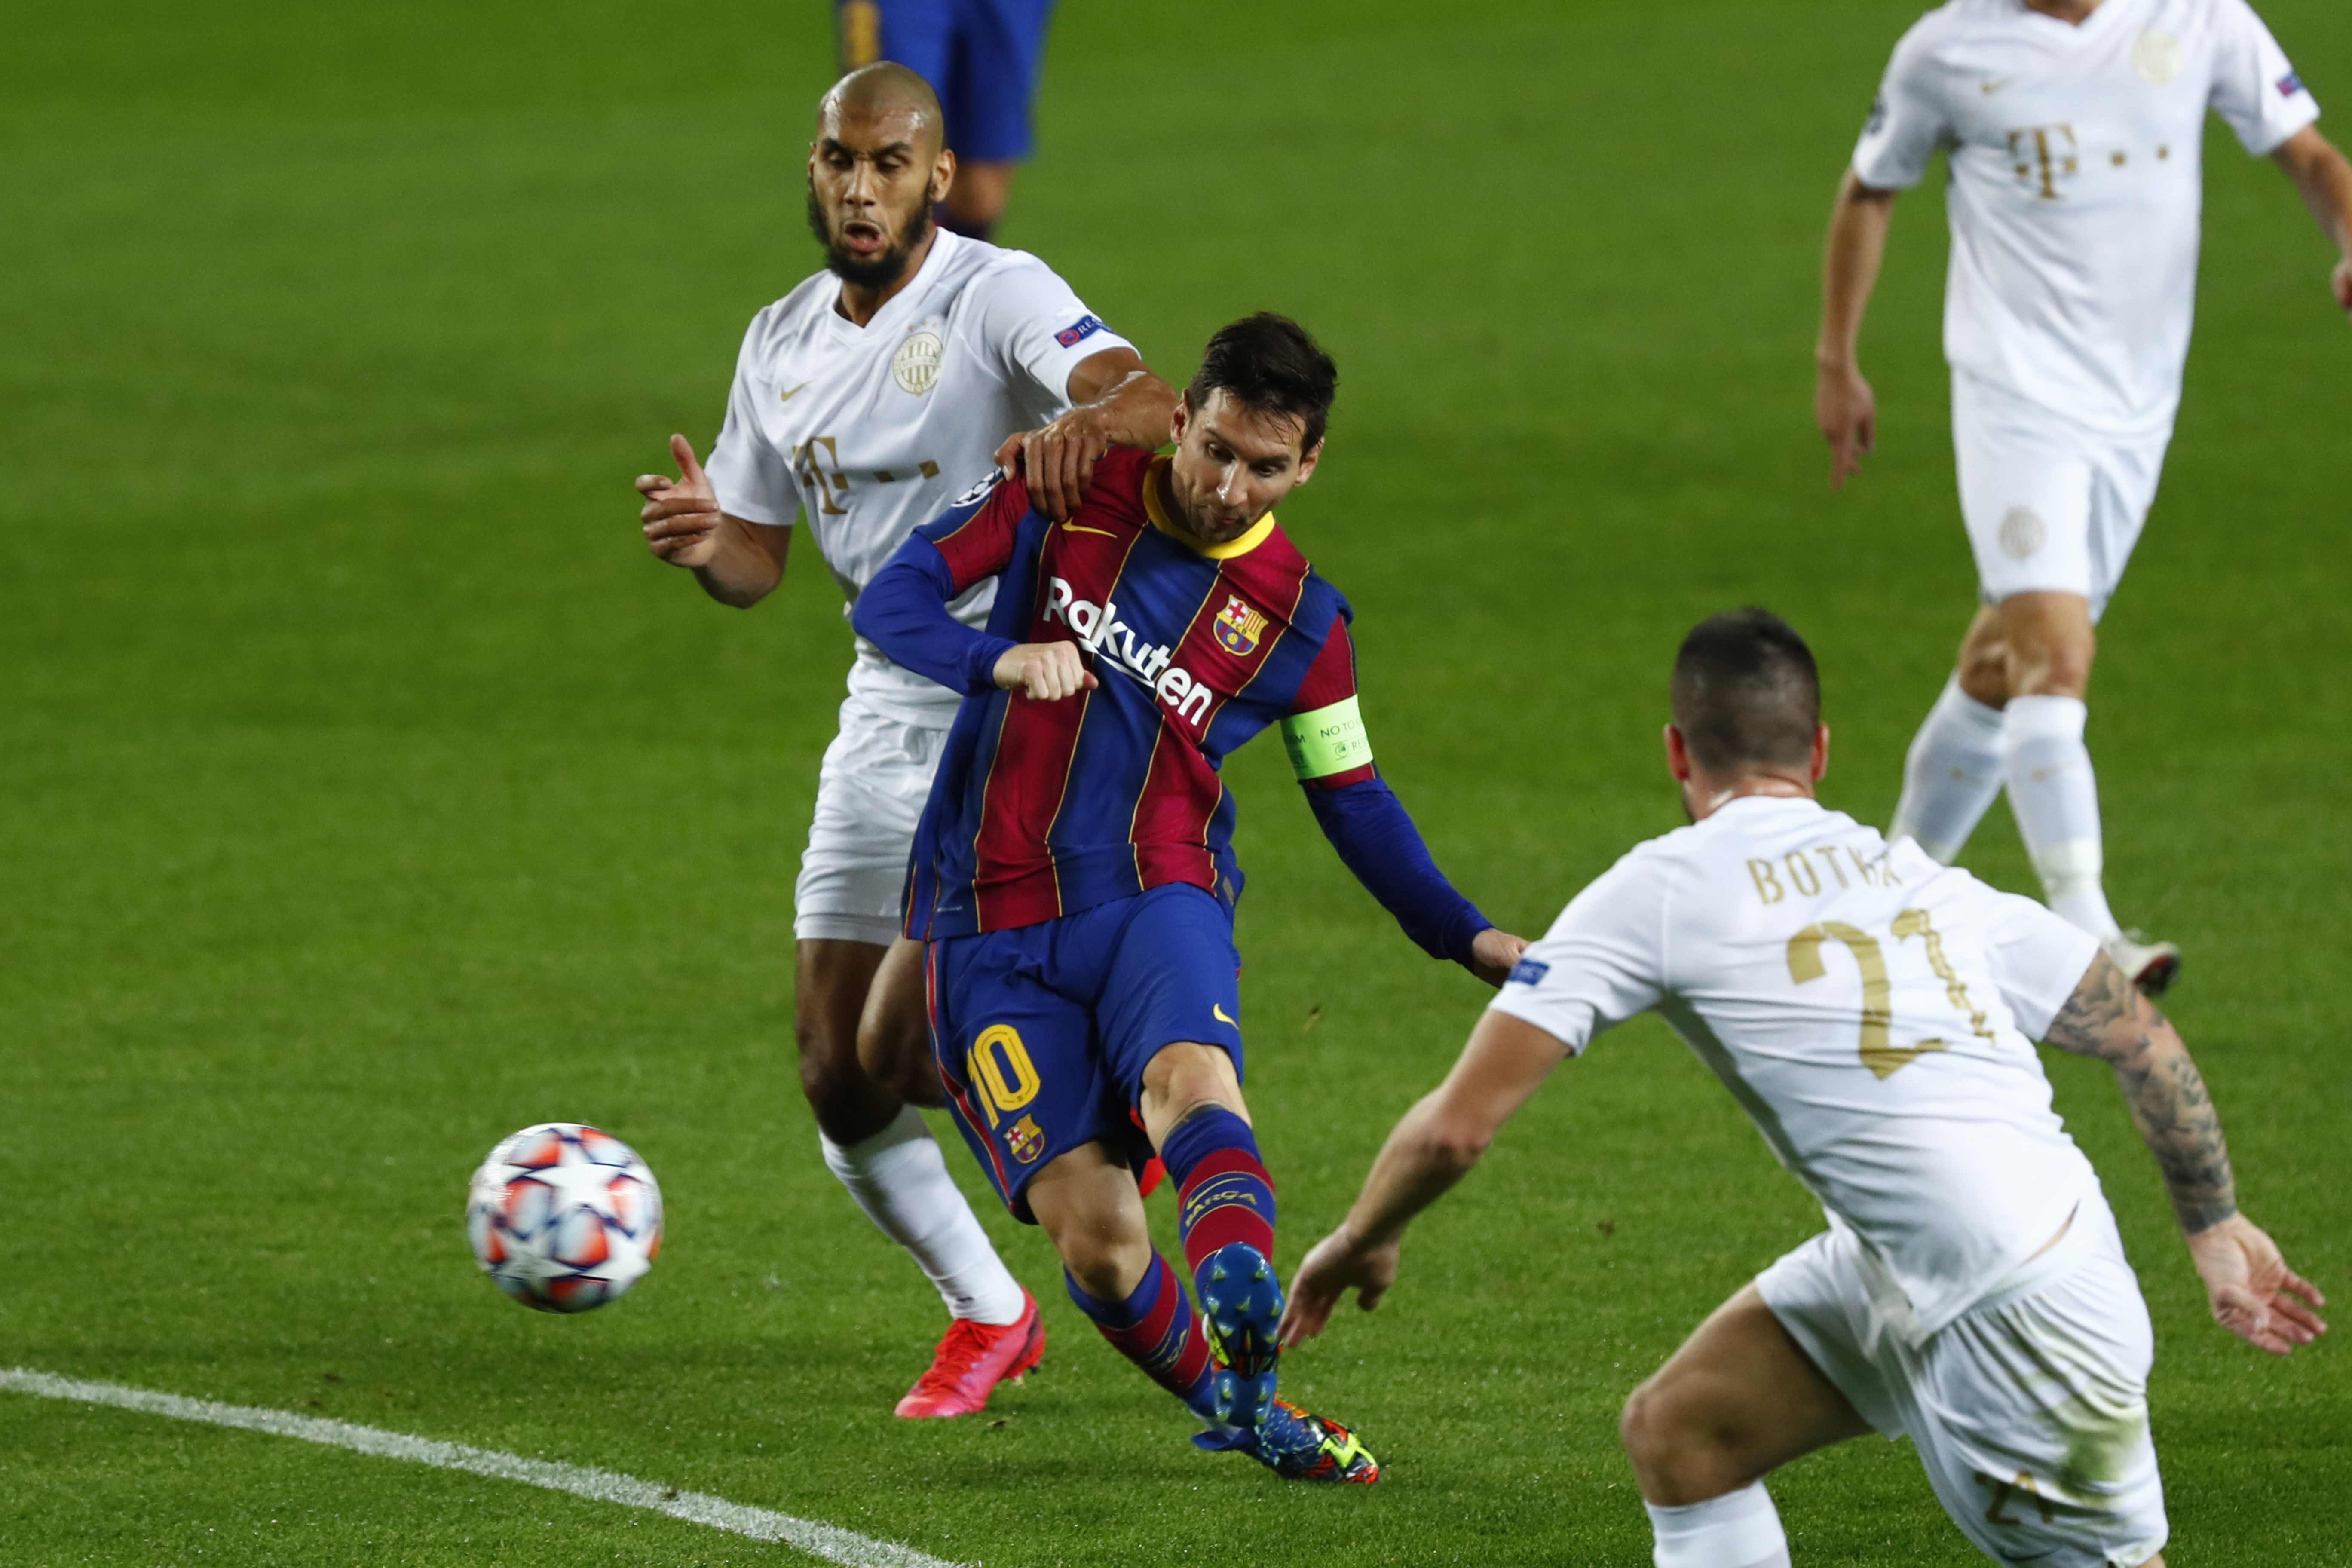 Comfortable win for Barca to start Champions League campaign